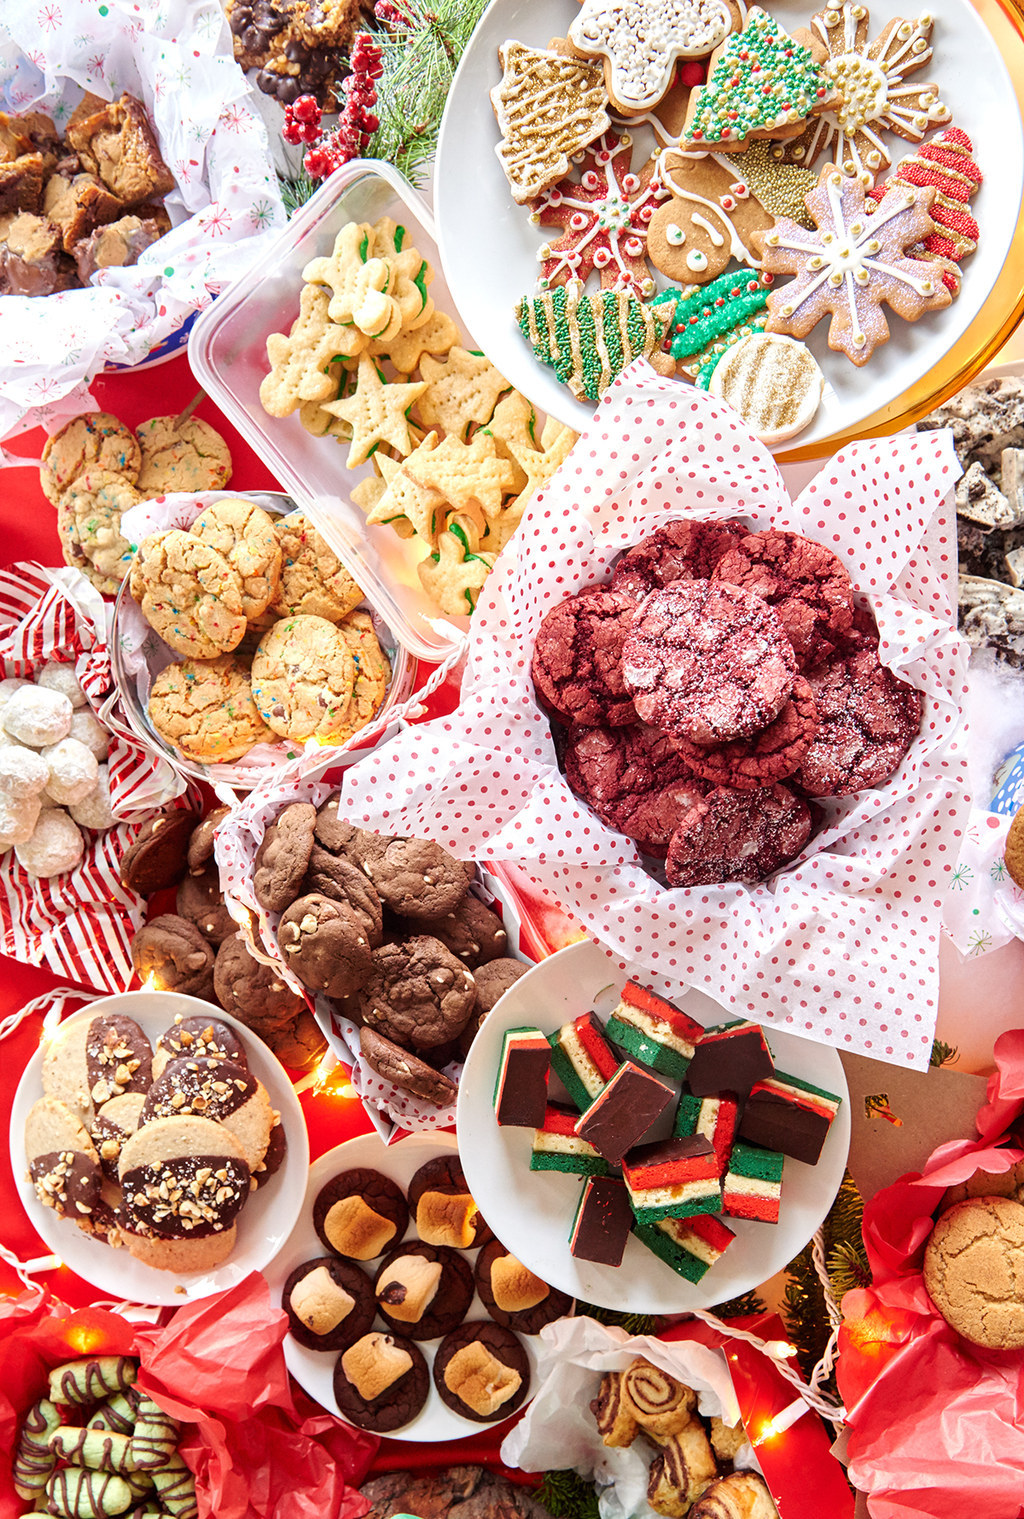 How To Bake Perfect Cookies While Maintaining Your Sanity